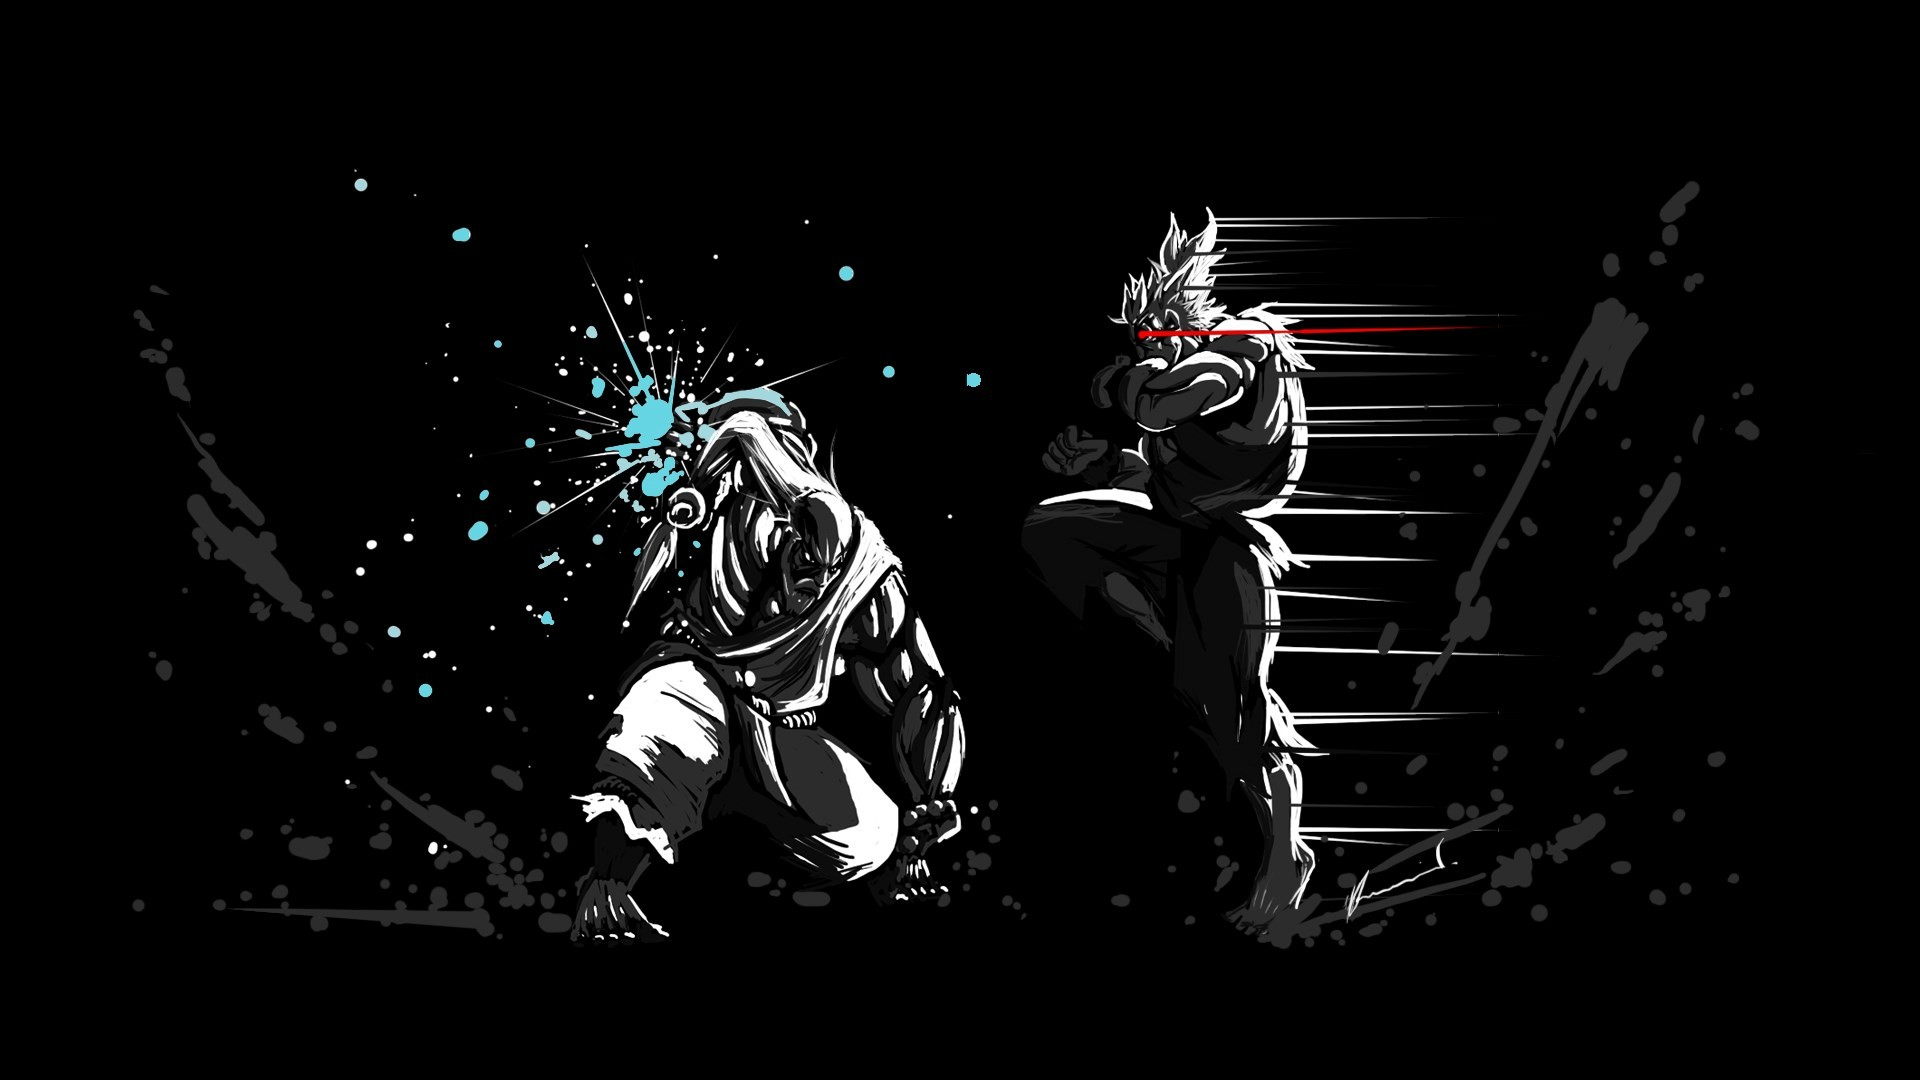 free download street fighter image